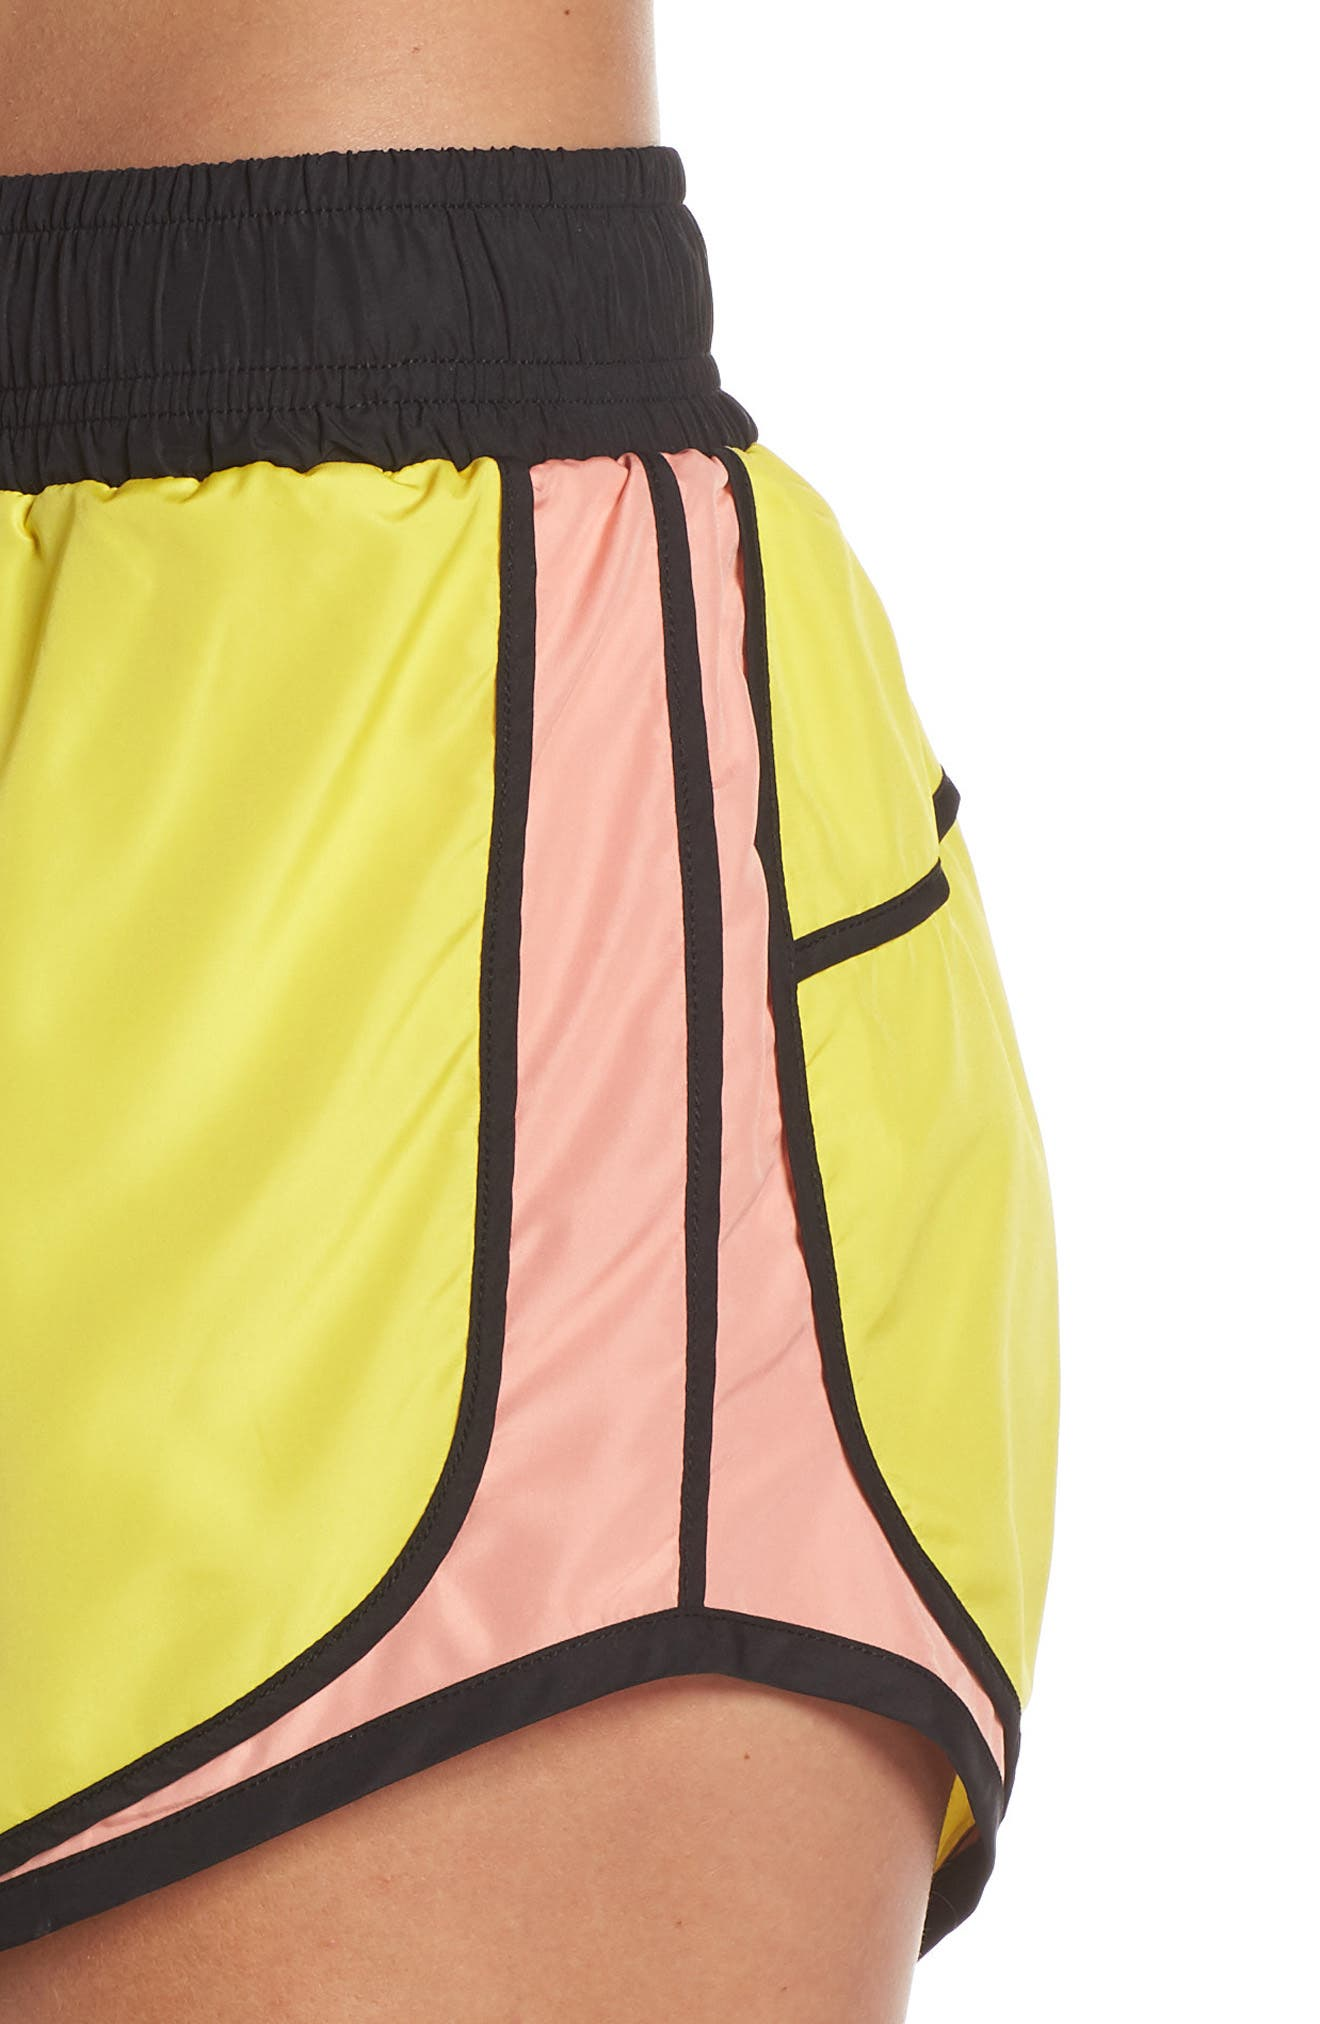 Sprint Vision Shorts,                             Alternate thumbnail 4, color,                             YELLOW